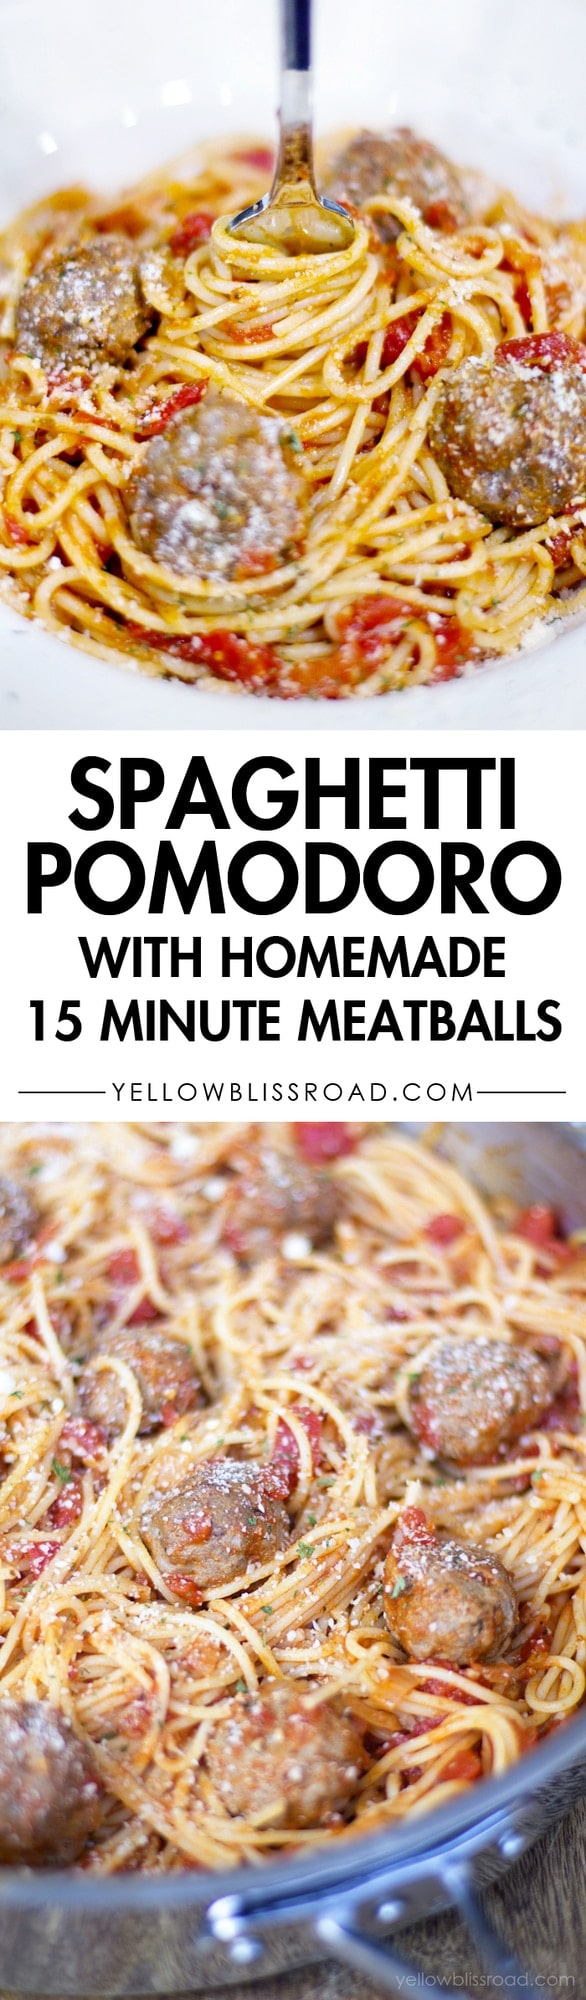 Spaghetti Pomodor with Homemade Meatballs